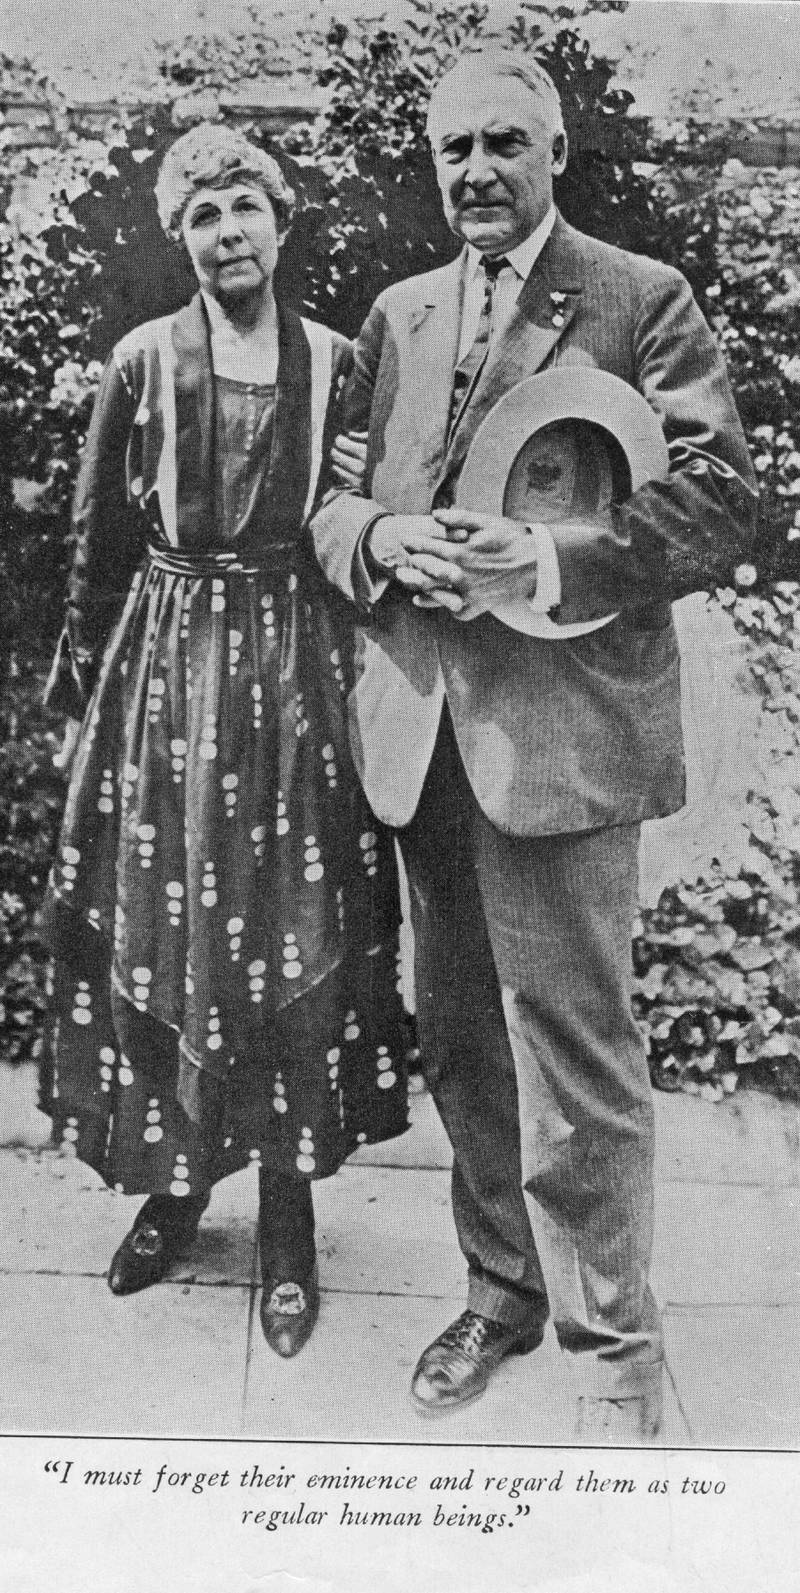 circa 1920:  The 29th American President Warren Gamaliel Harding (1865 - 1923) and his wife Florence Kling DeWolfe.   Below them is a quote reading 'I must forget their eminence and regard them as two regular human beings'.  (Photo by Hulton Archive/Getty Images)